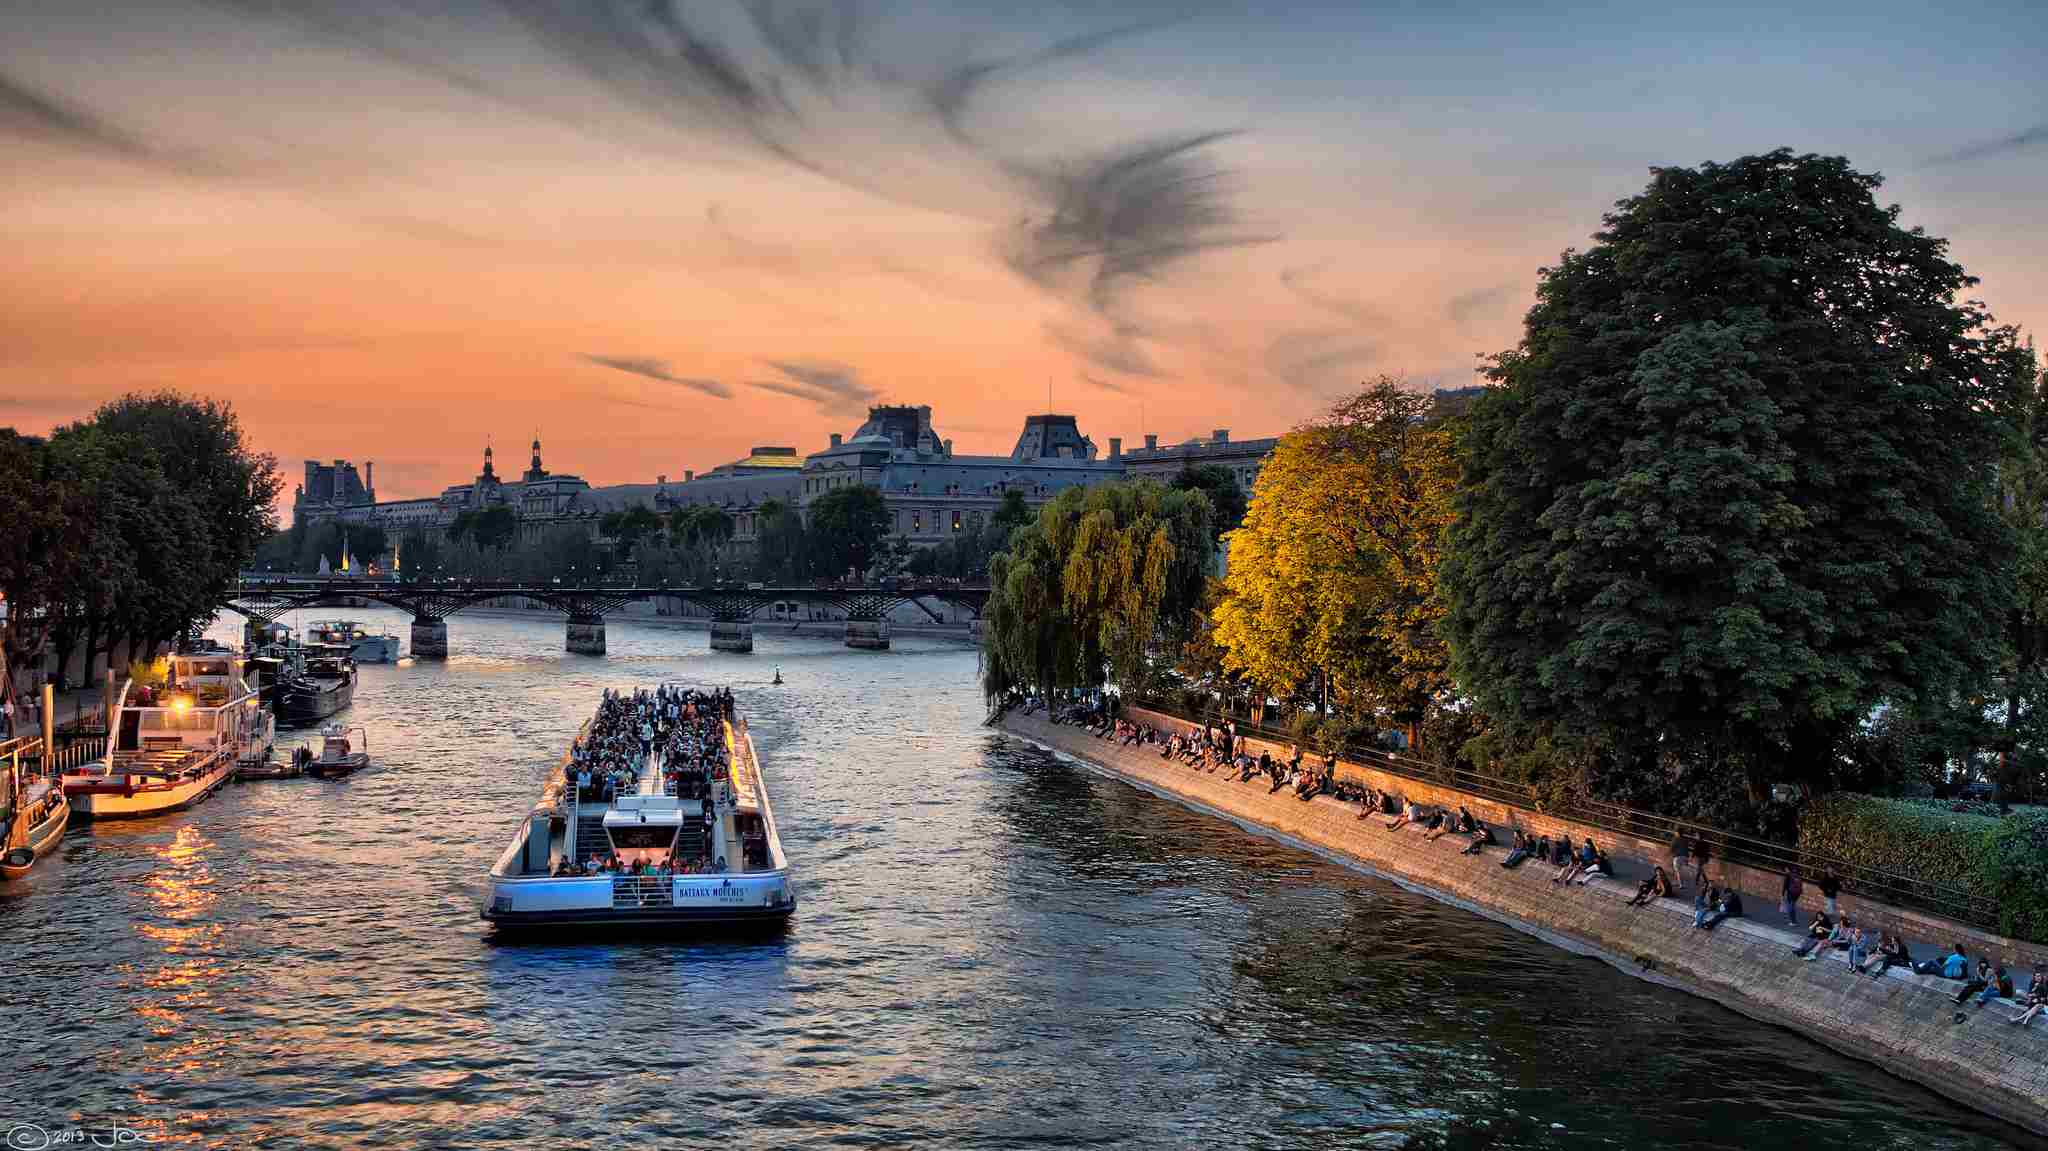 A boat going own the Seine River at sunset